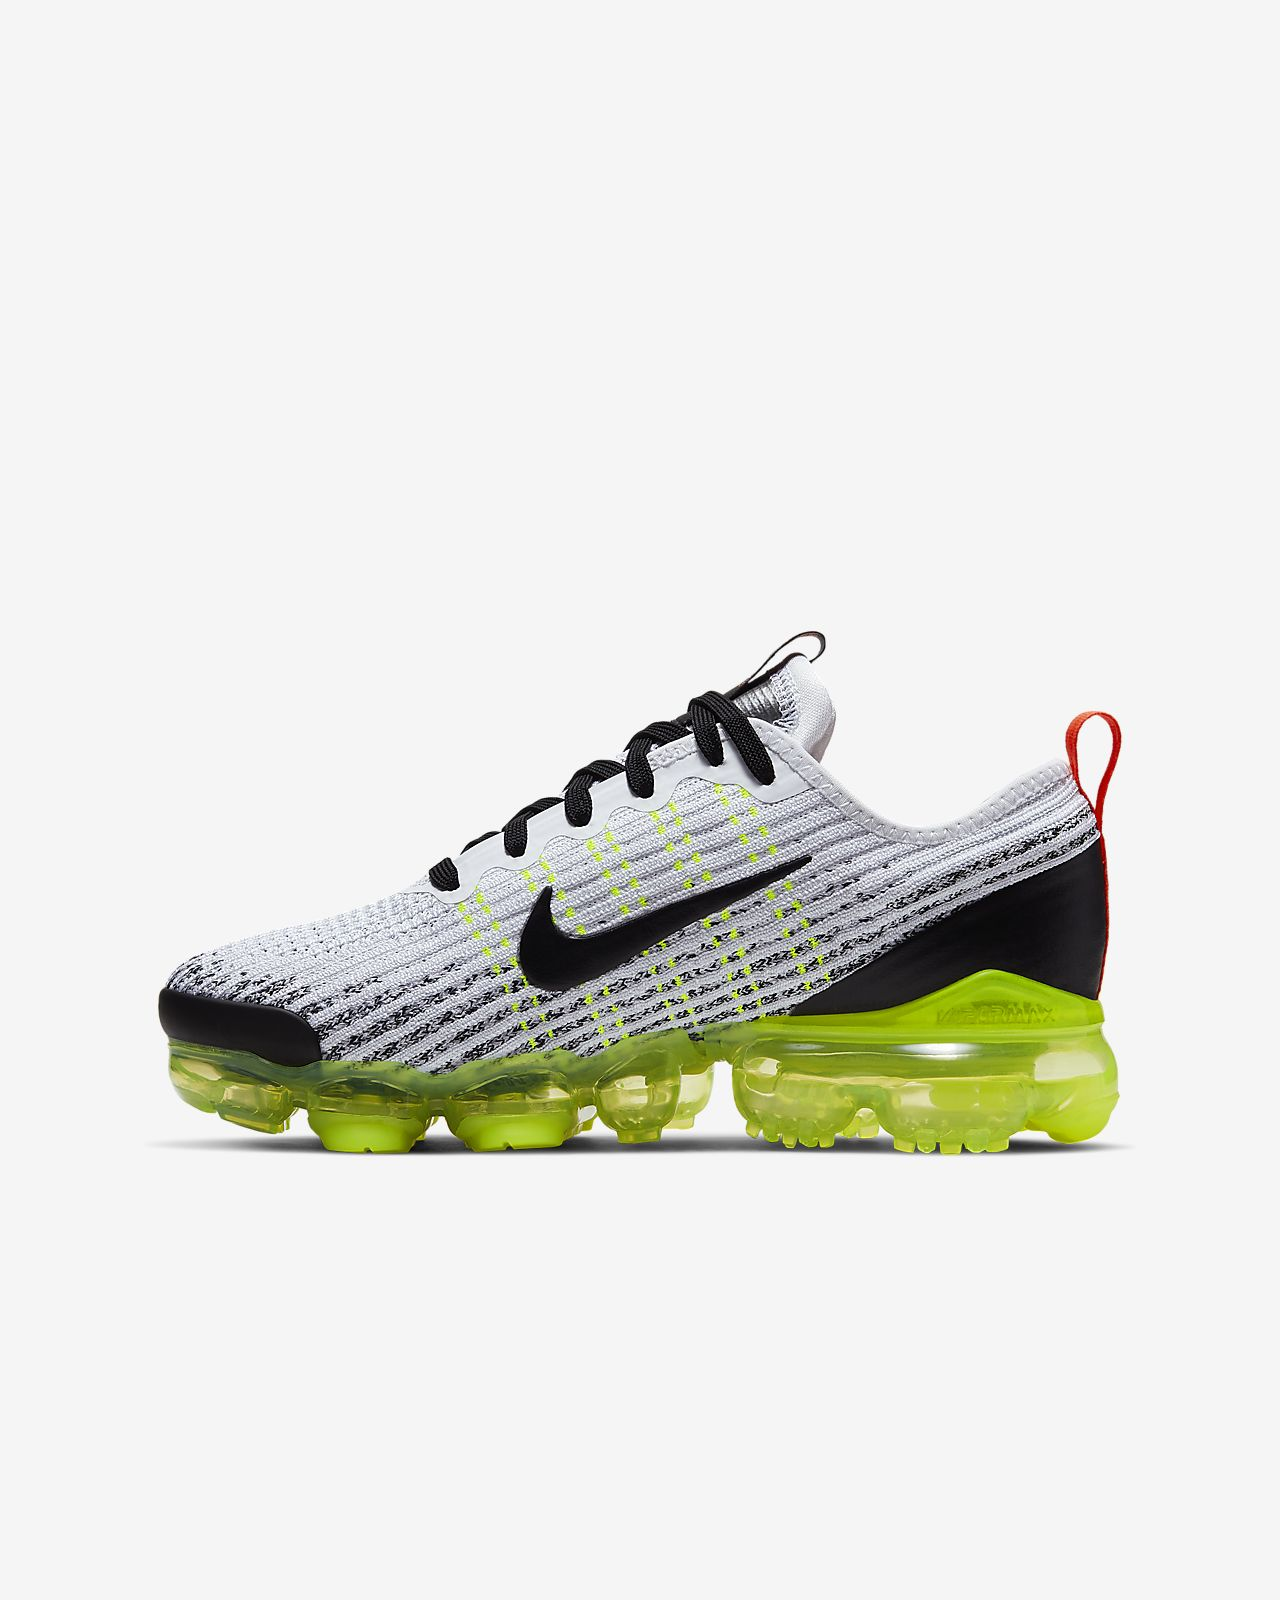 nike air vapormax flyknit 3 schuh f r ltere kinder nike. Black Bedroom Furniture Sets. Home Design Ideas